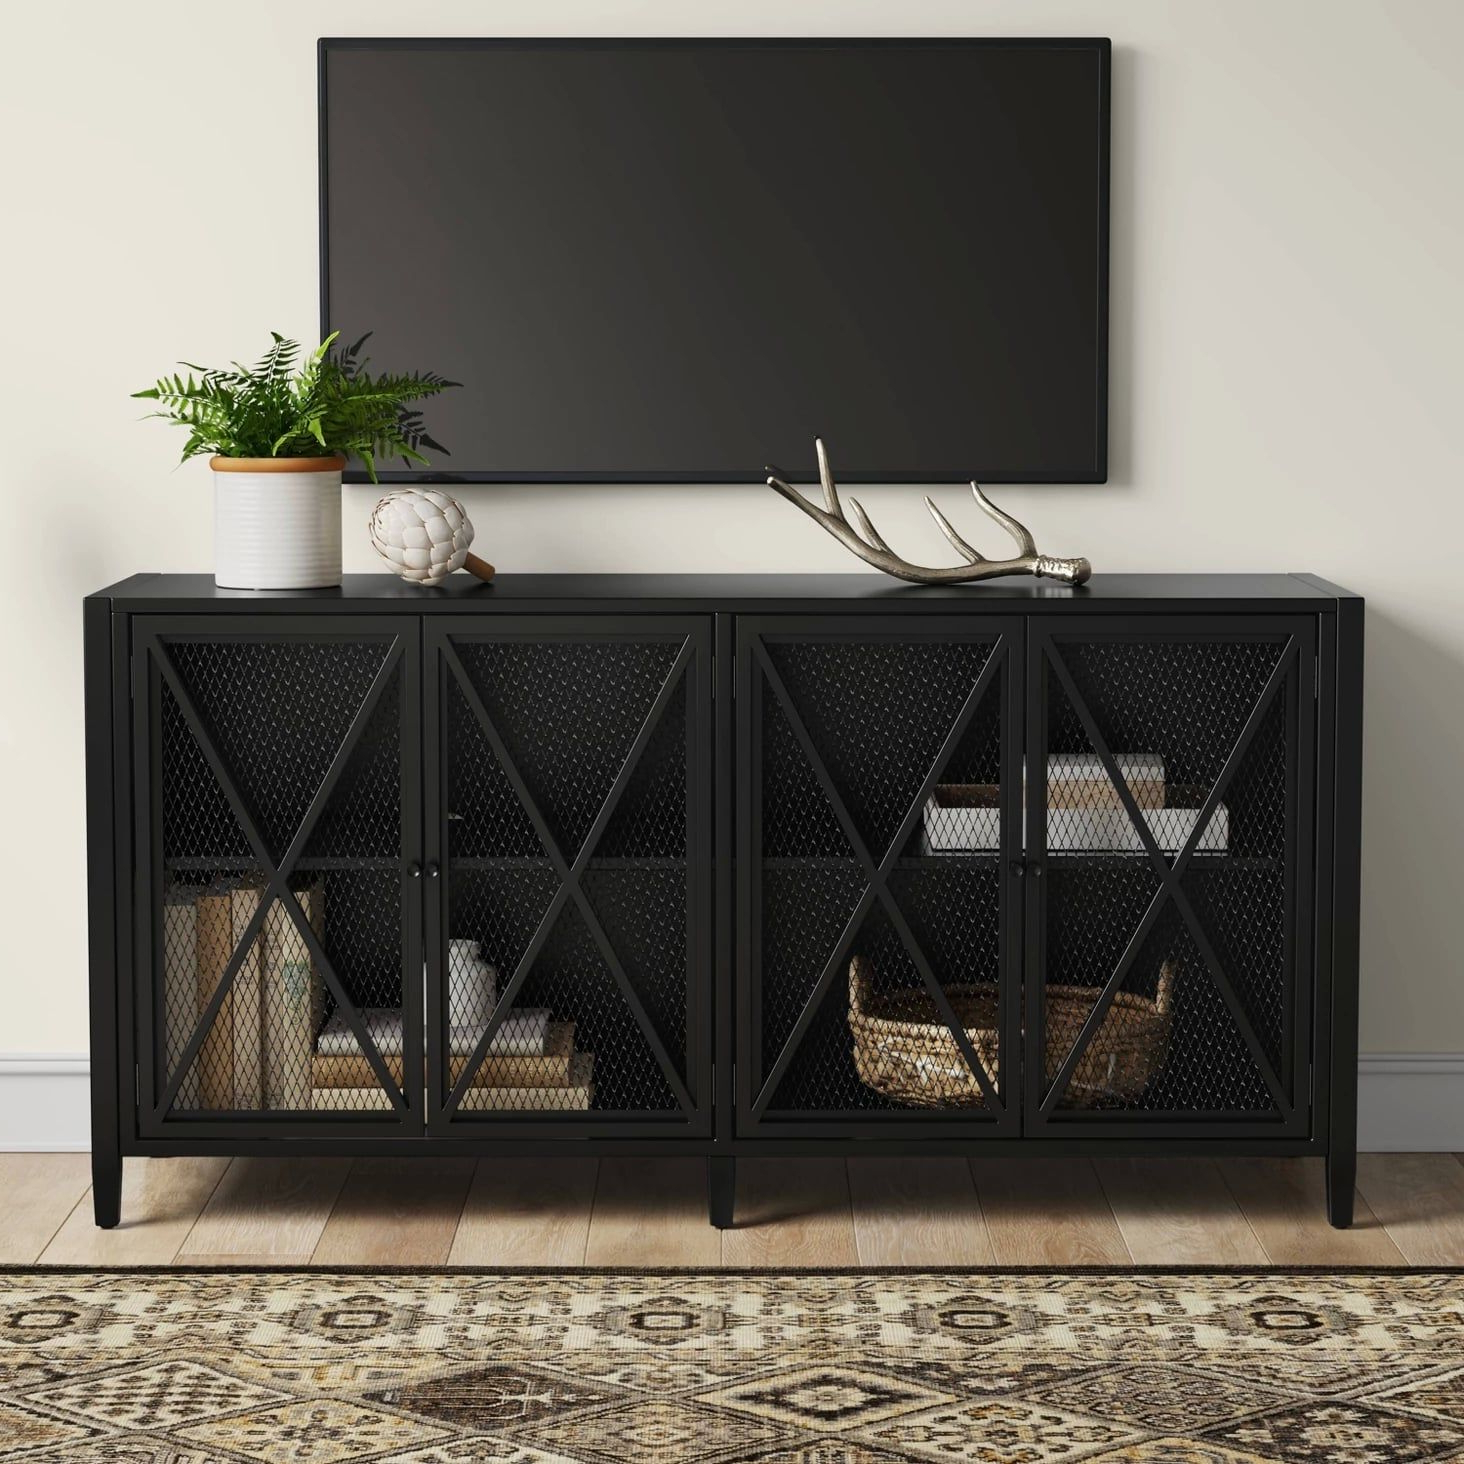 Fairmont Metal Media Stand With Storage | Metal Tv Stand Intended For Tabletop Tv Stands Base With Black Metal Tv Mount (View 10 of 20)